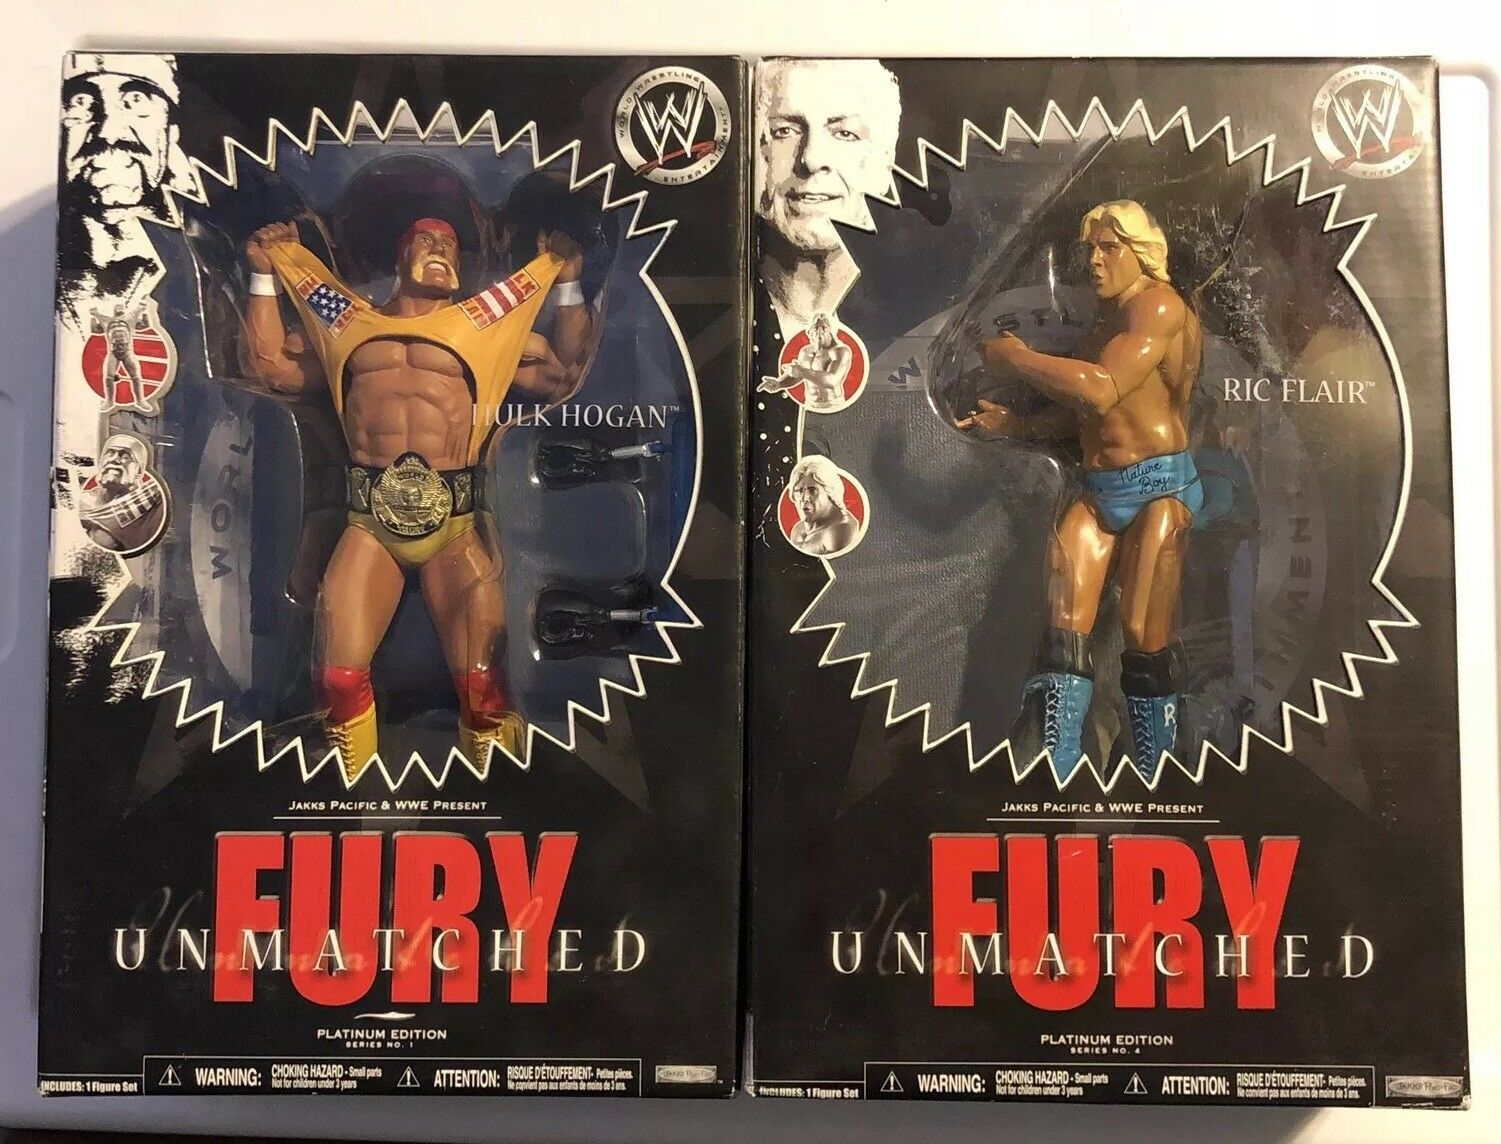 HULK HOGAN & RIC FLAIR  Fury Unmatched Lot nuovo SEALED  marchi di stilisti economici